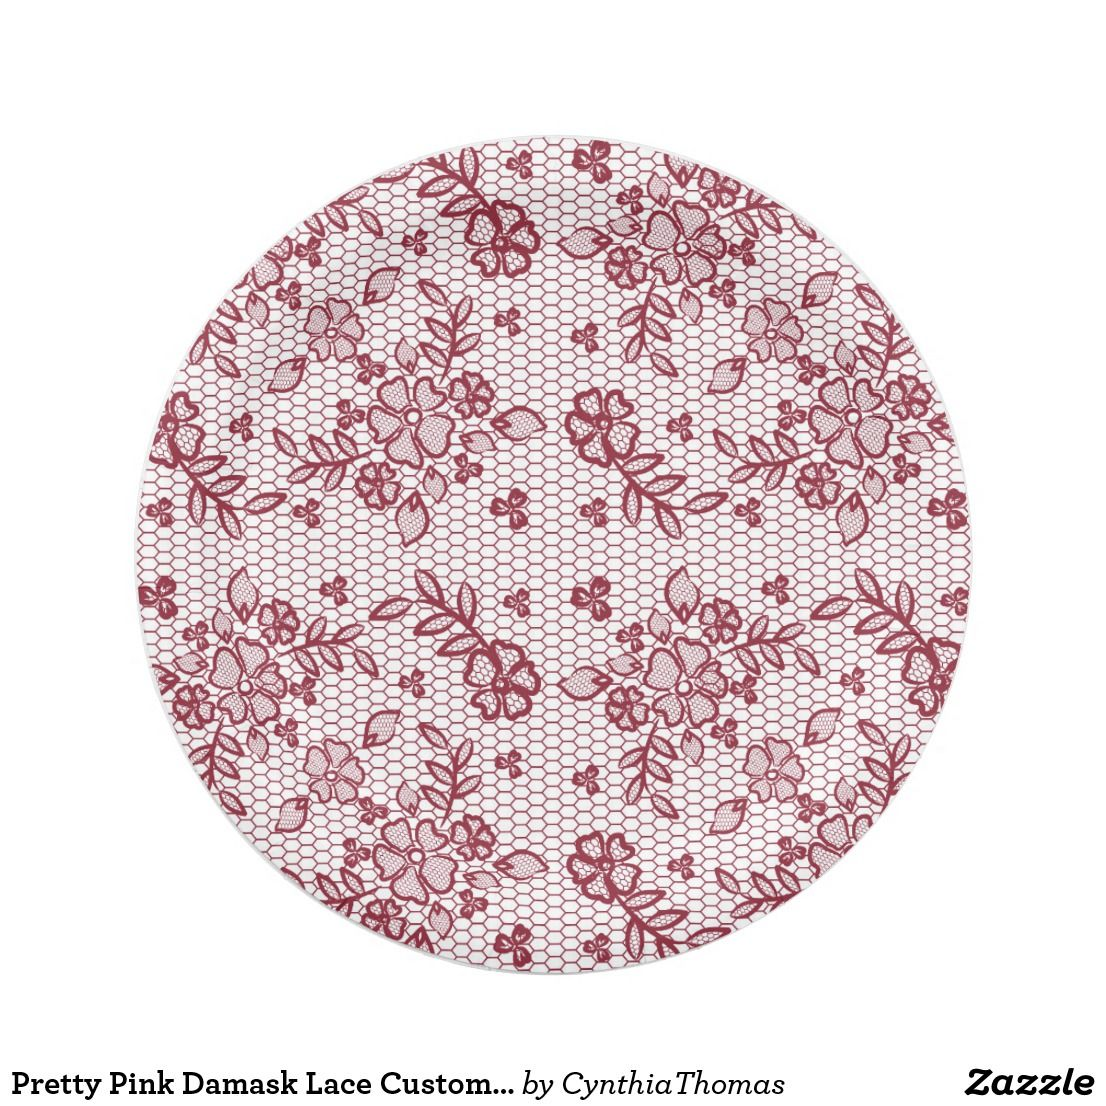 Explore Pink Damask Paper Plates and more!  sc 1 st  Pinterest & Pretty Pink Damask Lace Custom Paper Plates | Cynthia Thomas | Pinterest